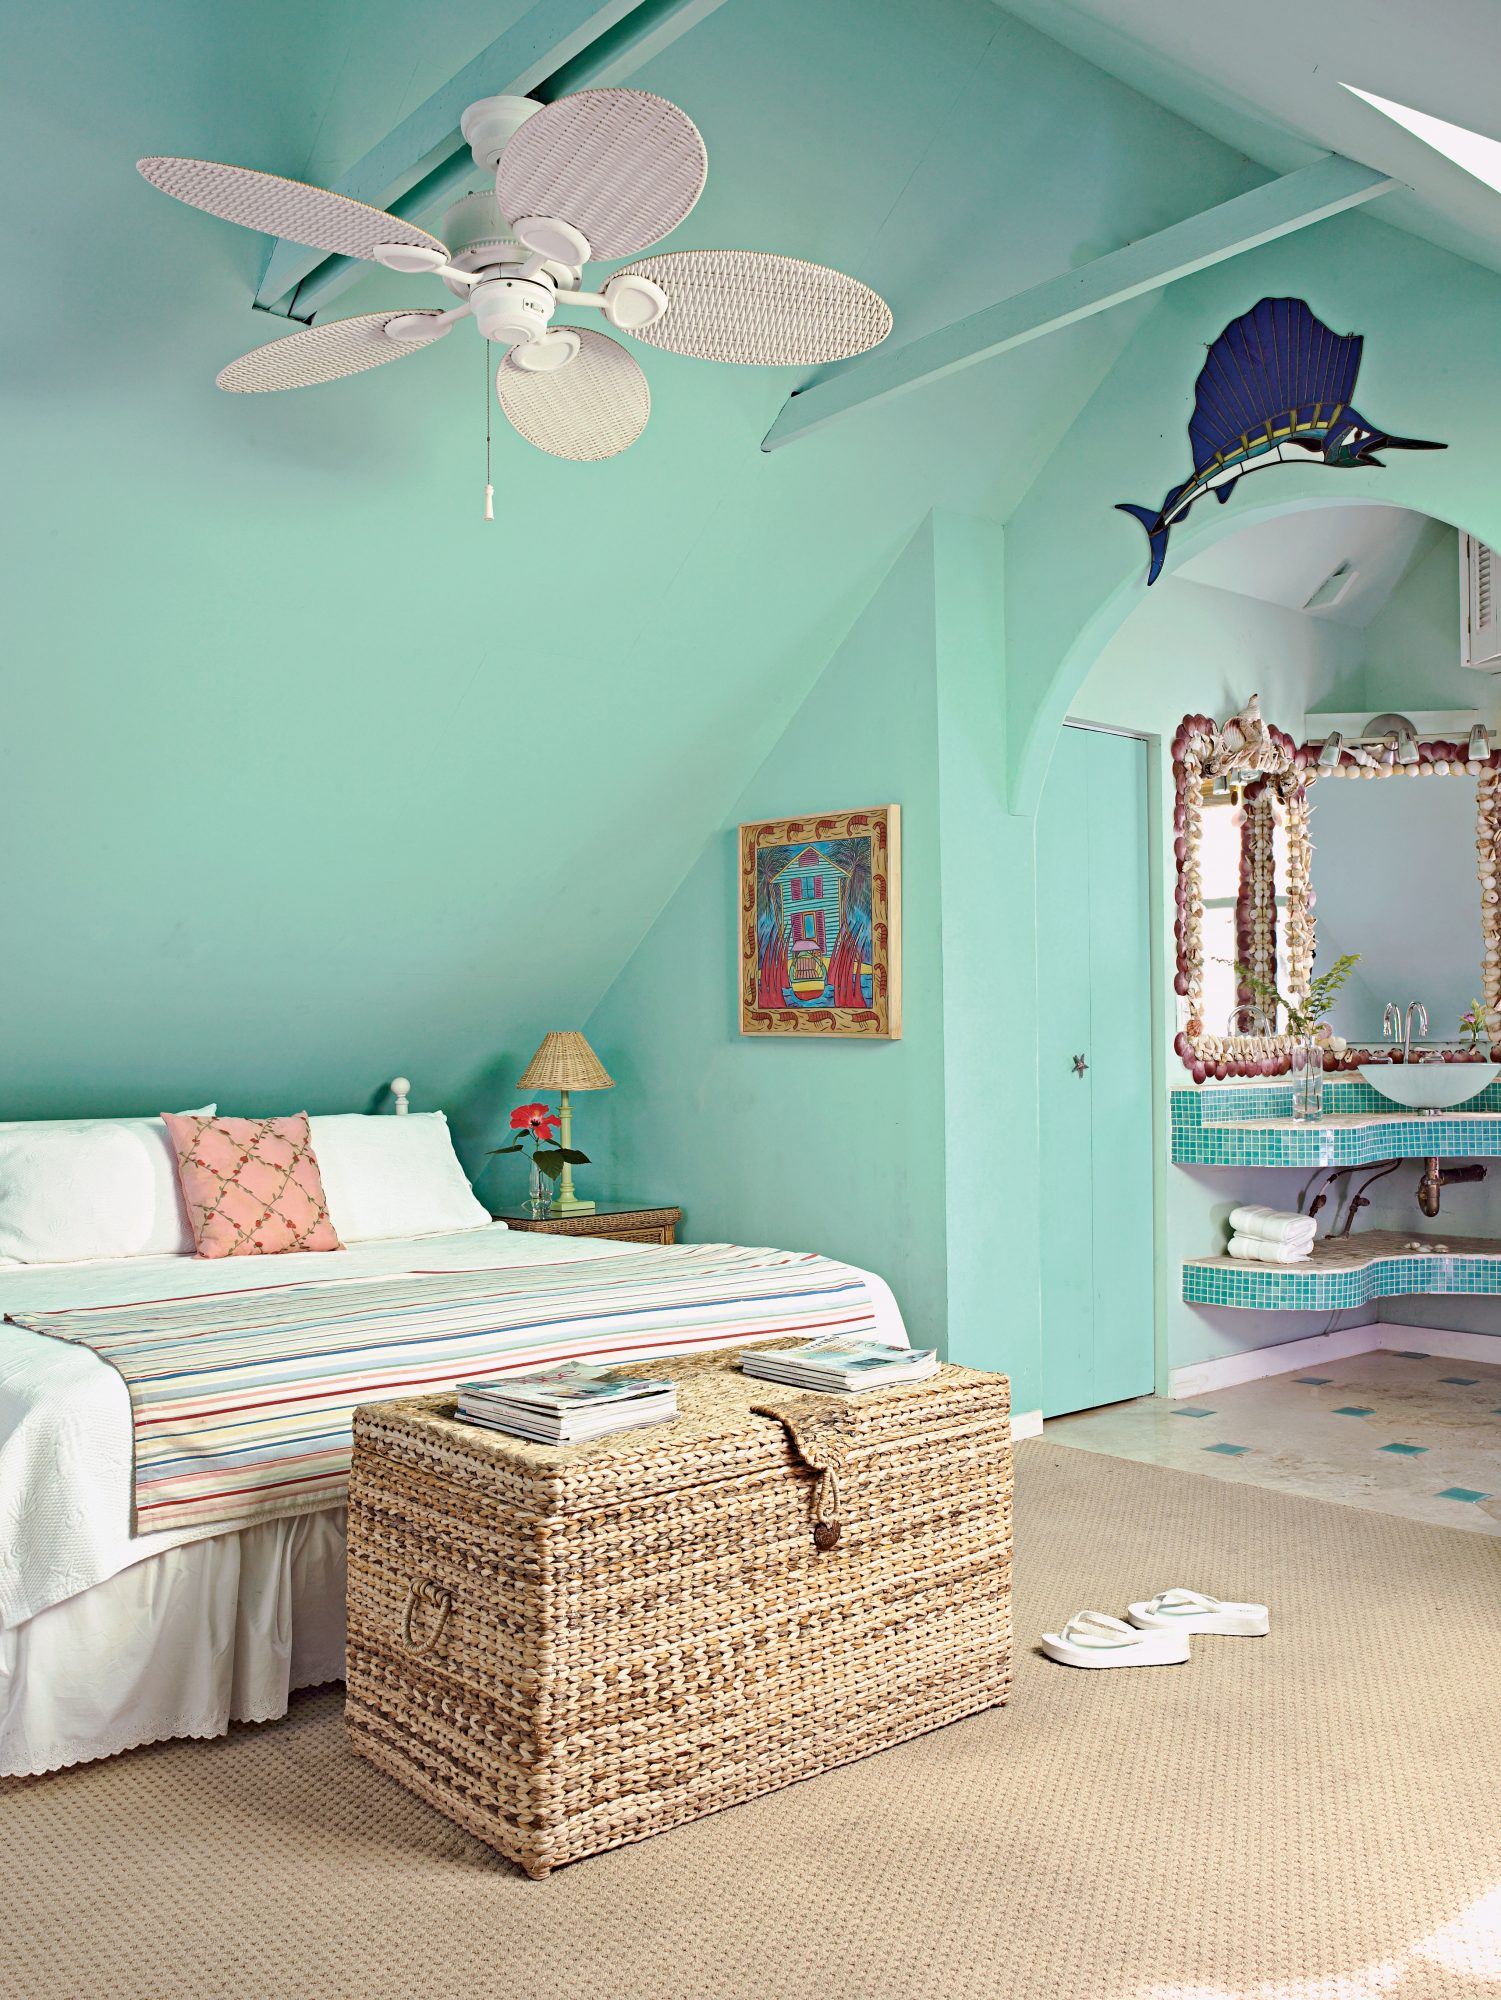 White linens pop against aqua walls in this master bedroom.